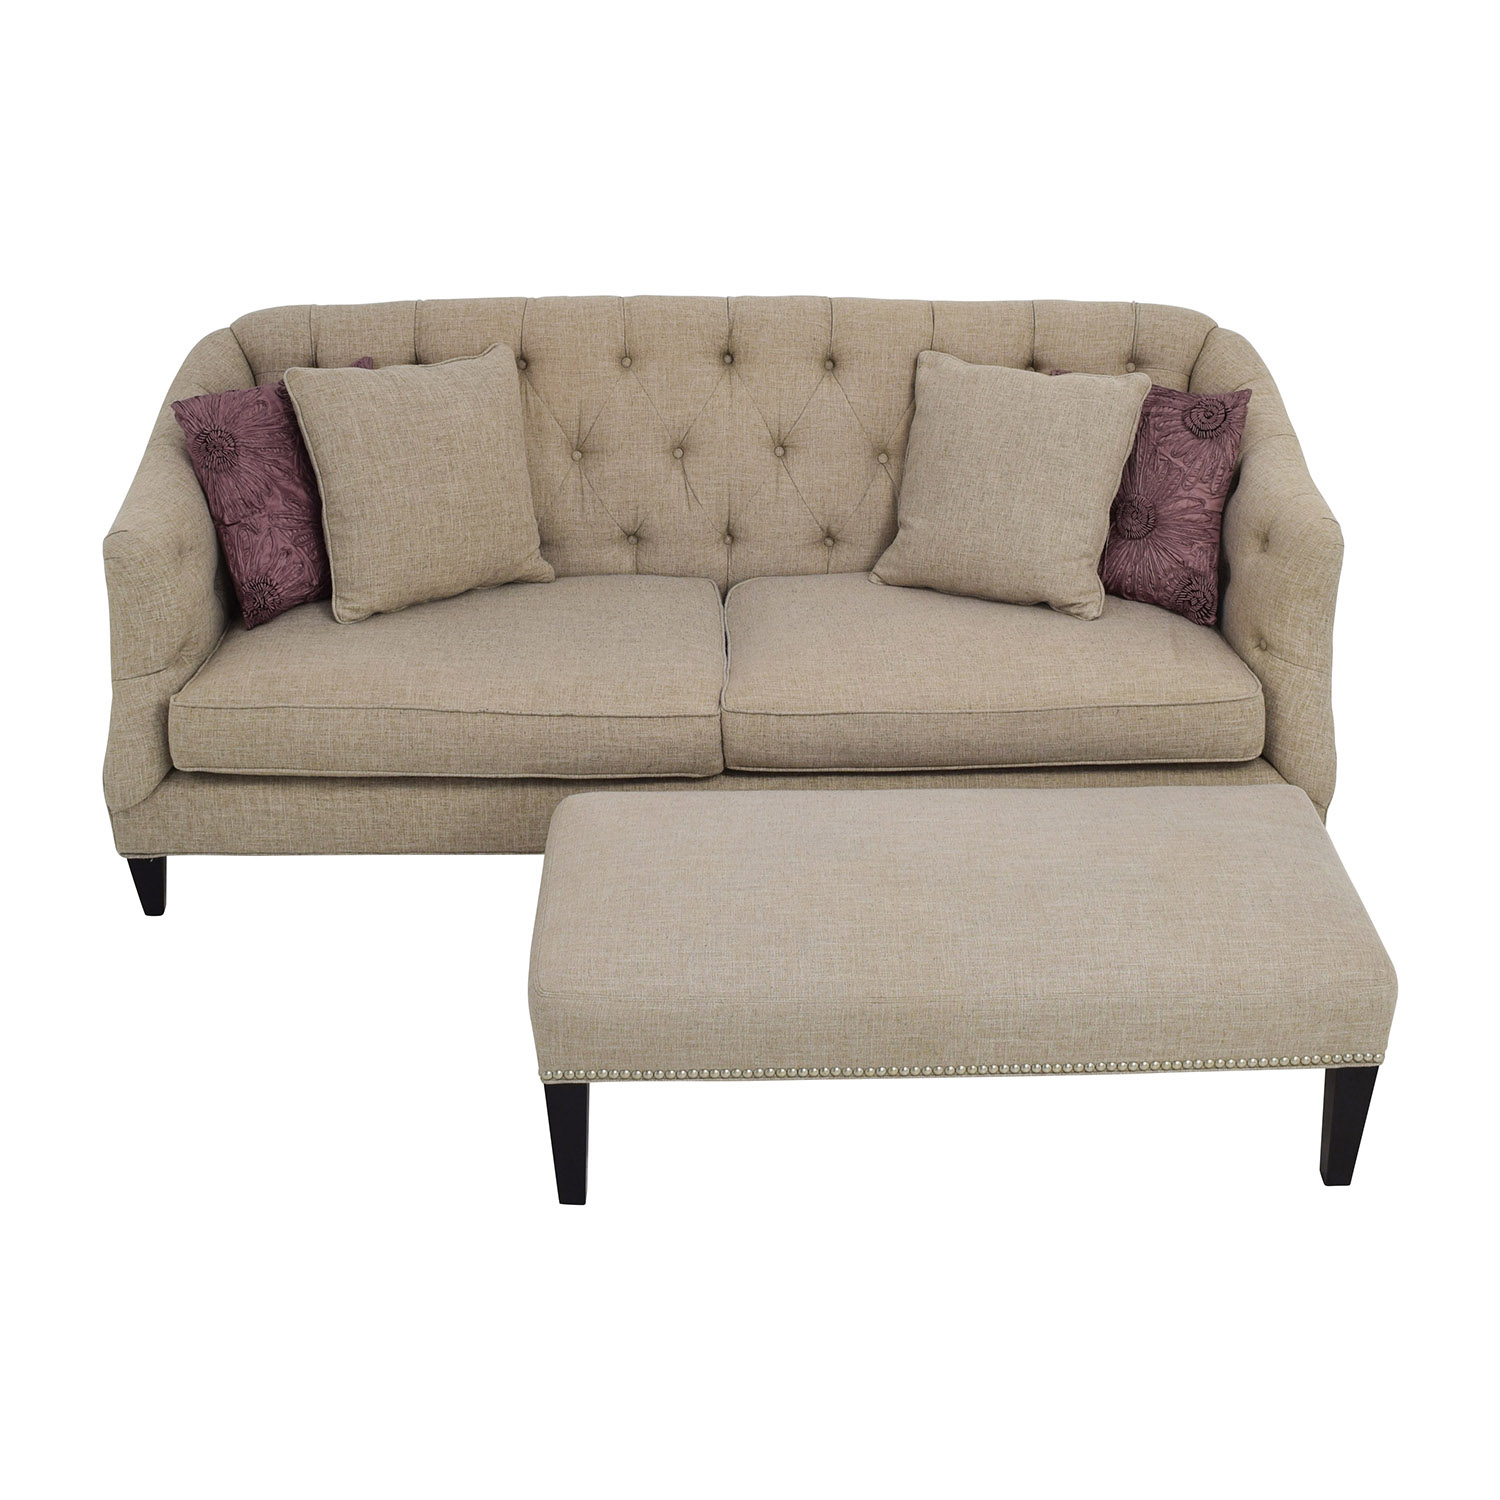 Raymour and Flanigan Raymour & Flanigan Tufted Beige Sofa and Ottoman dimensions